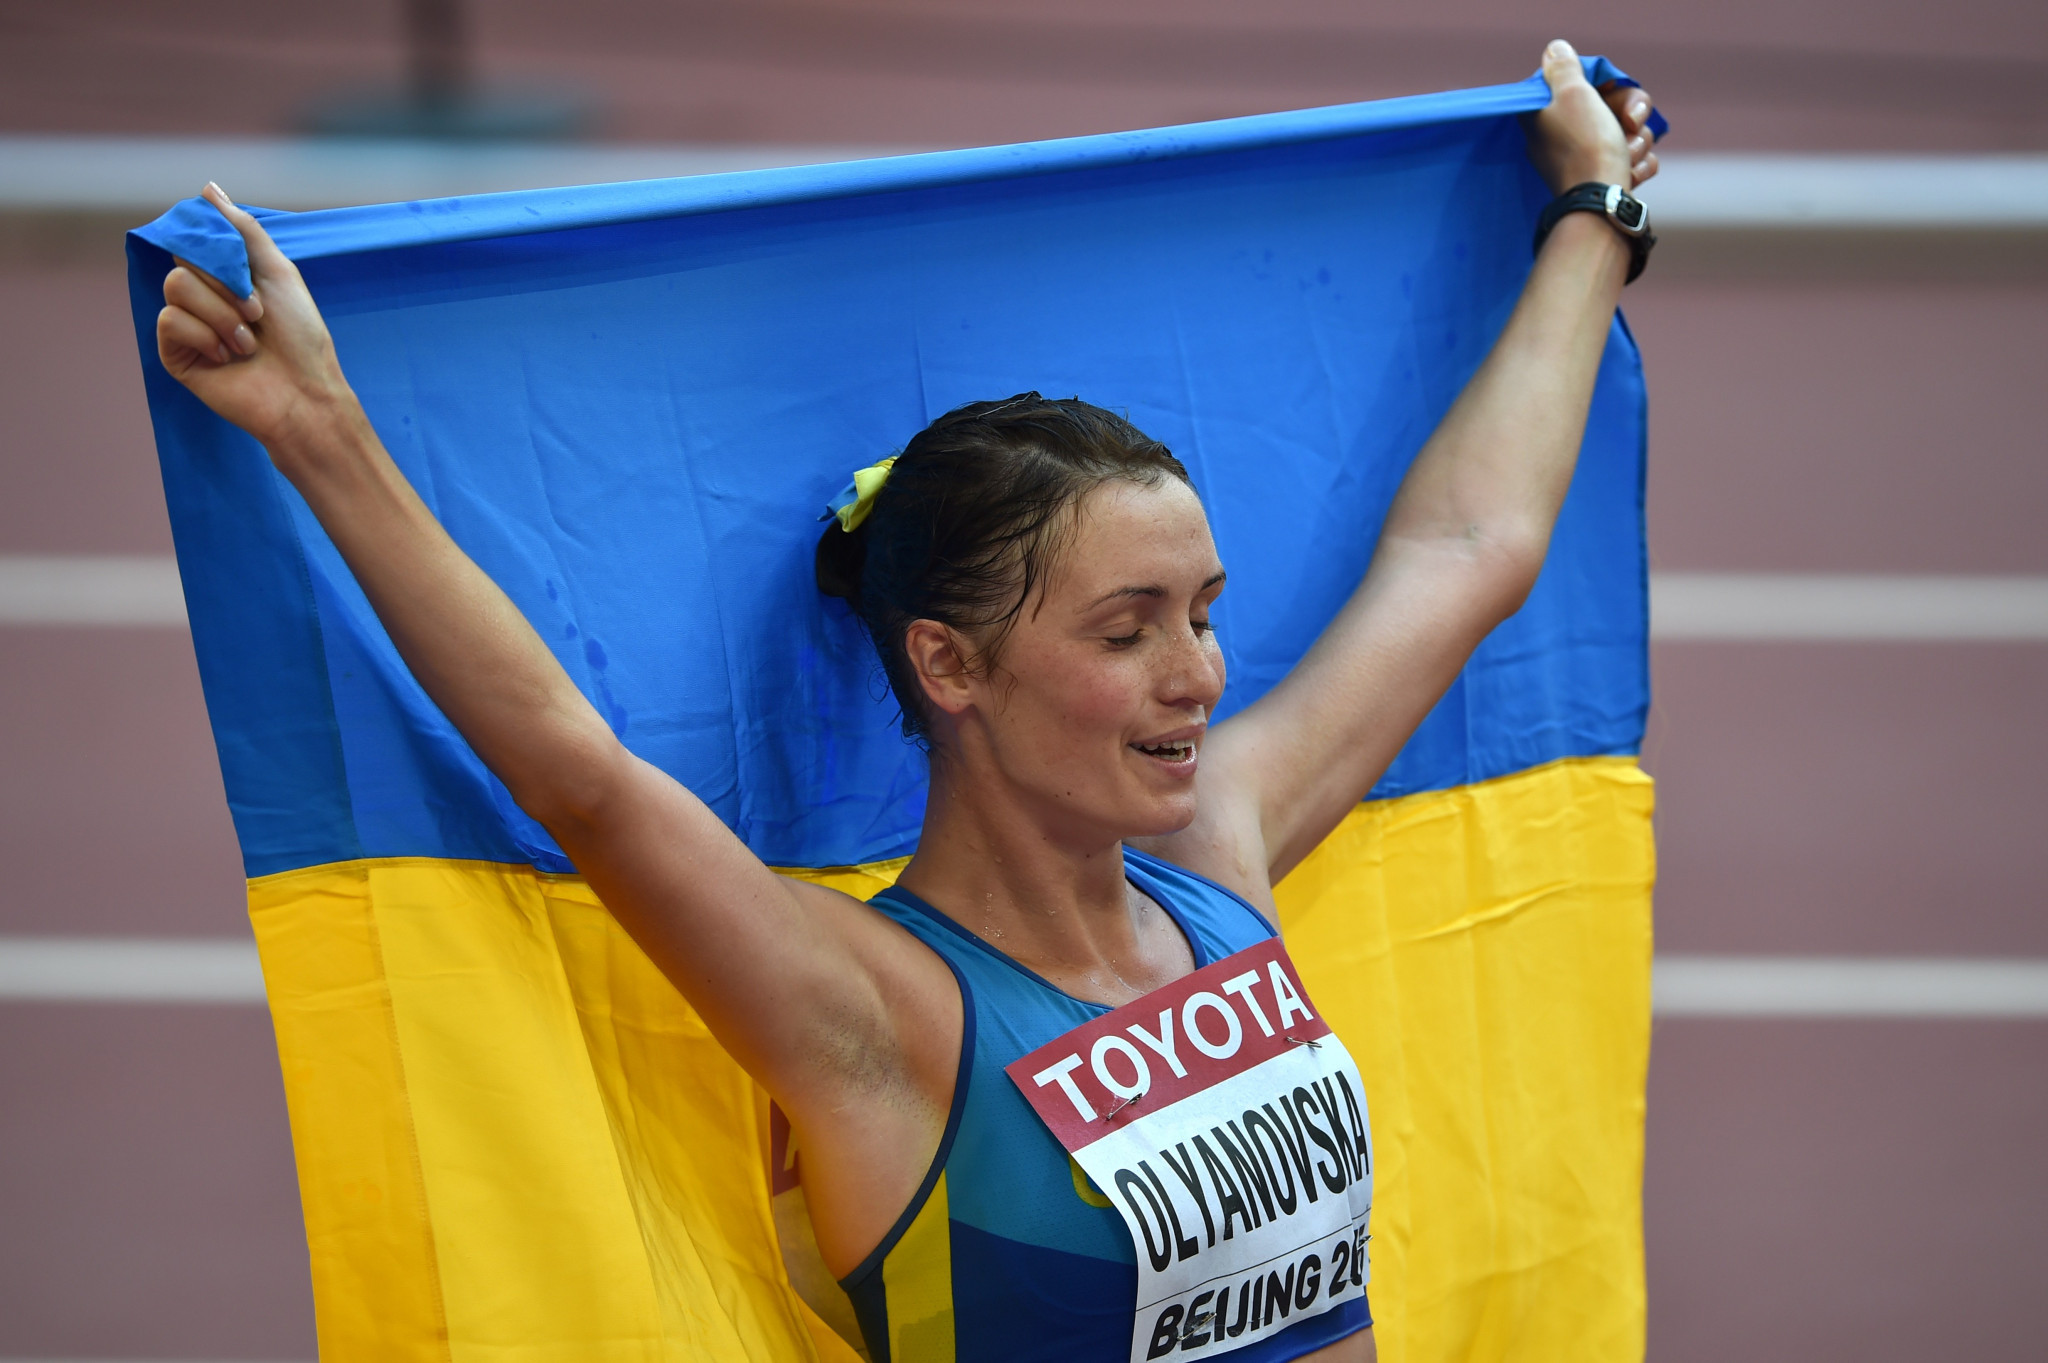 Another Ukrainian race-walker, Lyudmyla Olyanovska, is also currently banned for an anti-doping violation ©Getty Images